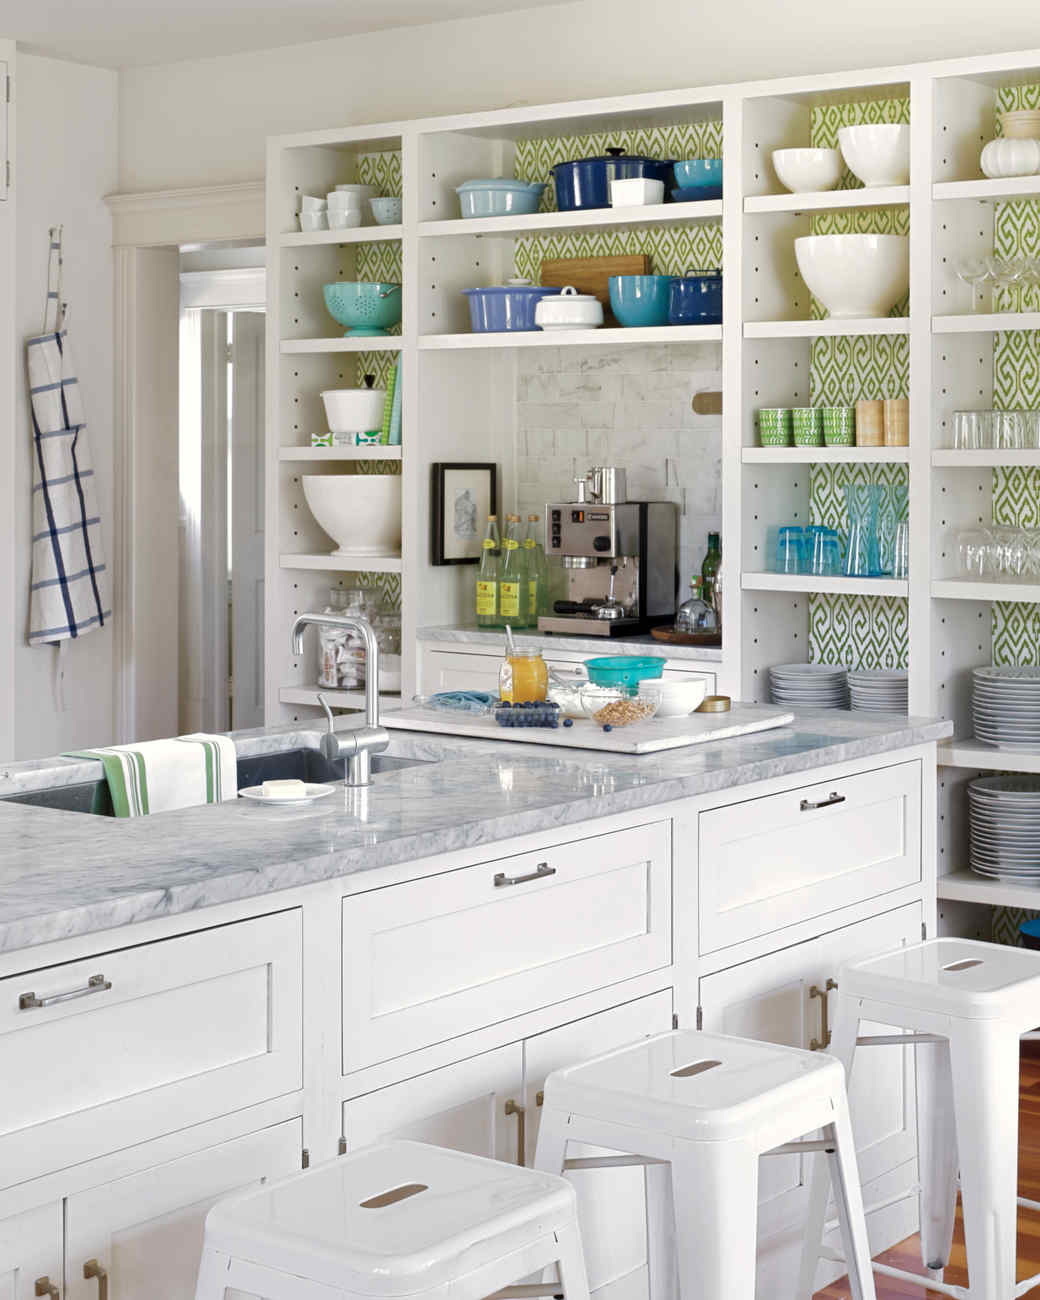 White Kitchen Aqua Accents kitchen accents we love | martha stewart